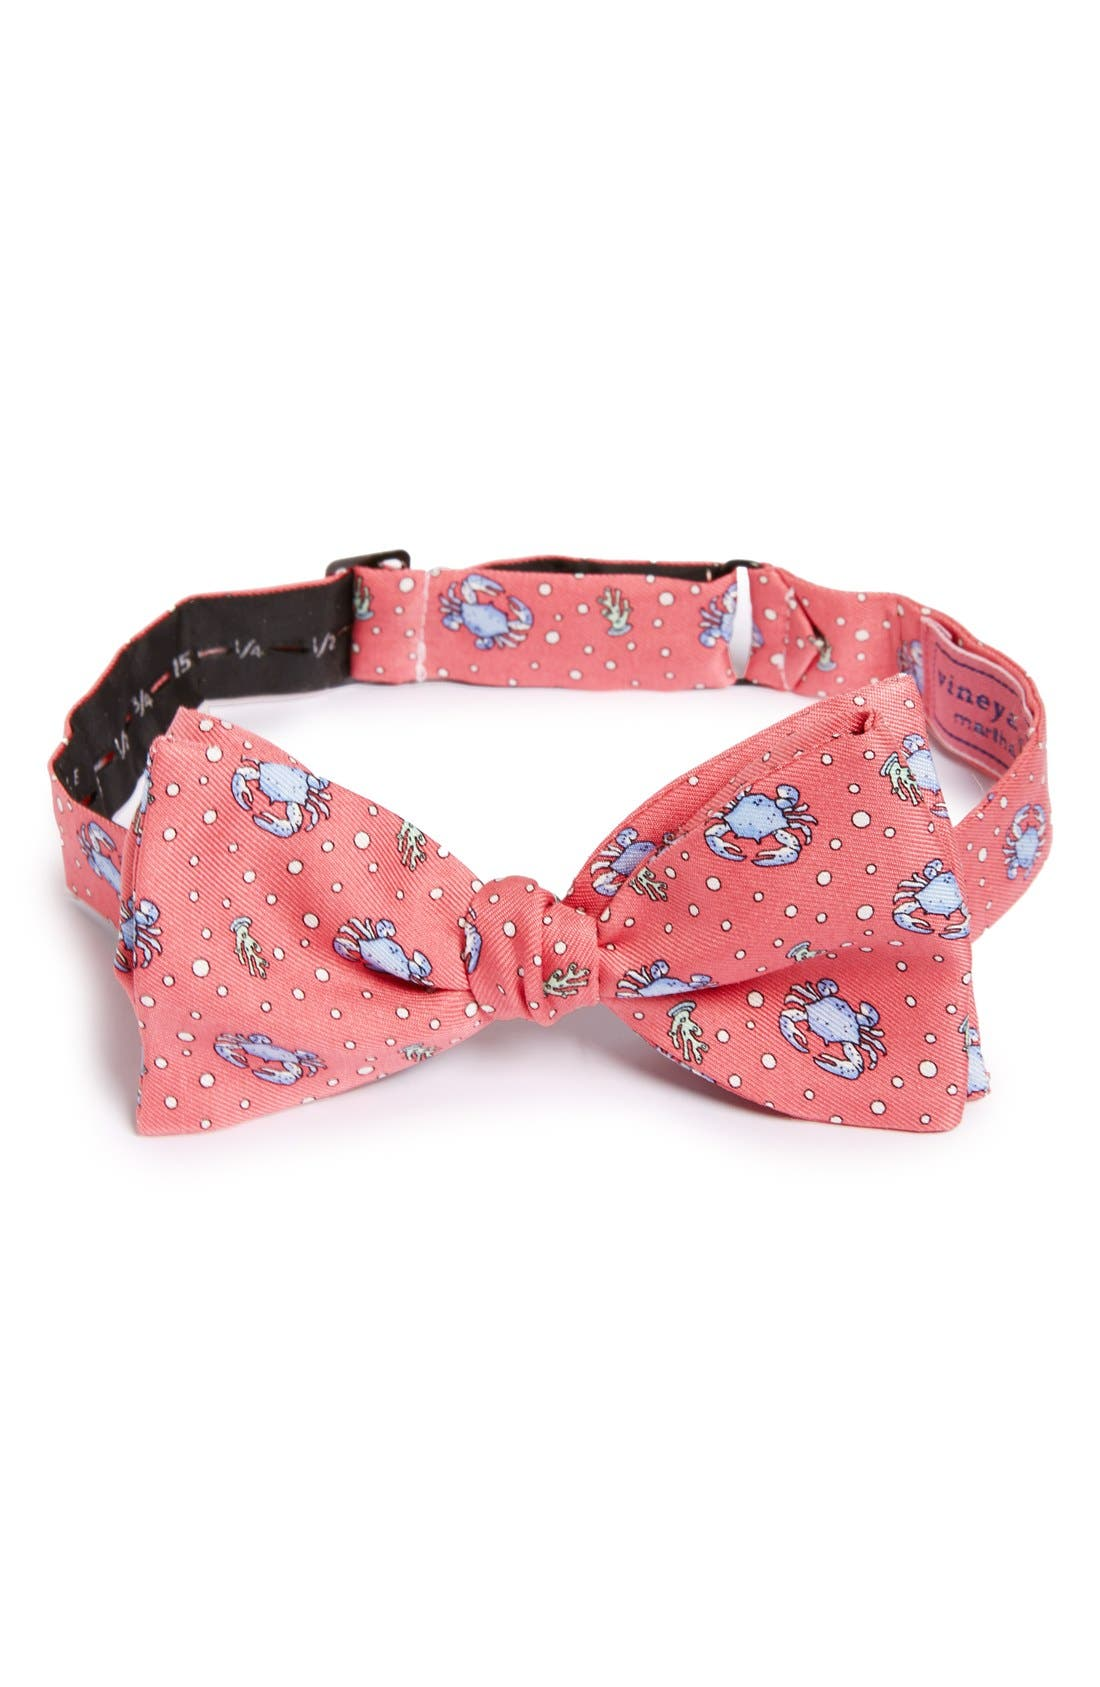 Crab Silk Bow Tie,                         Main,                         color, Raspberry